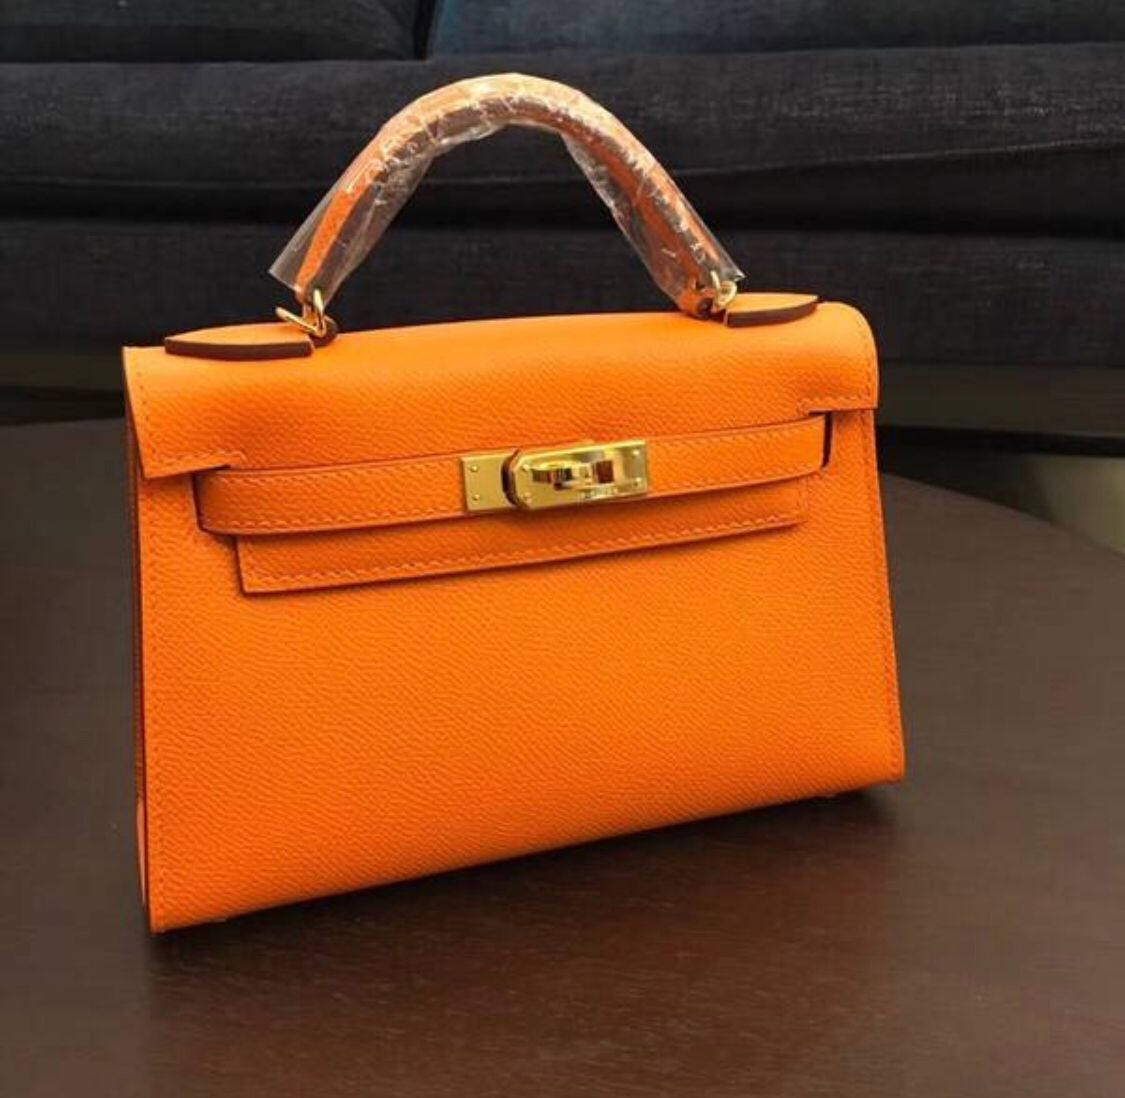 Hermes Kelly 20cm Tote Bag Original Leather KL20 orange